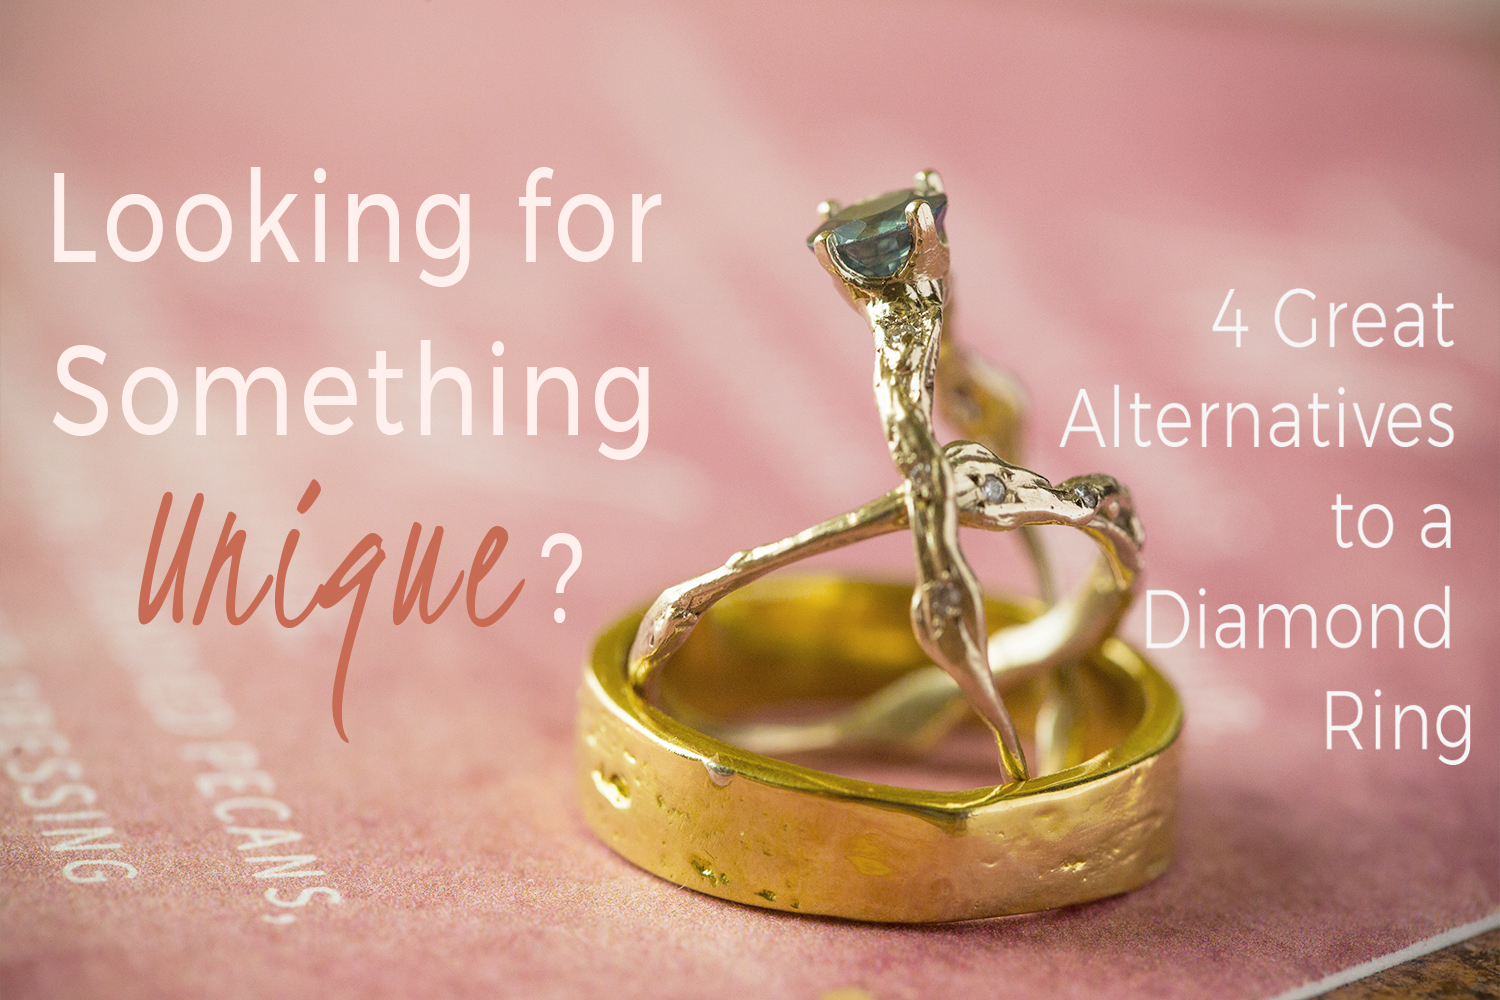 Looking for Something Unique?   4 Great Alternatives to a Diamond Engagement Ring